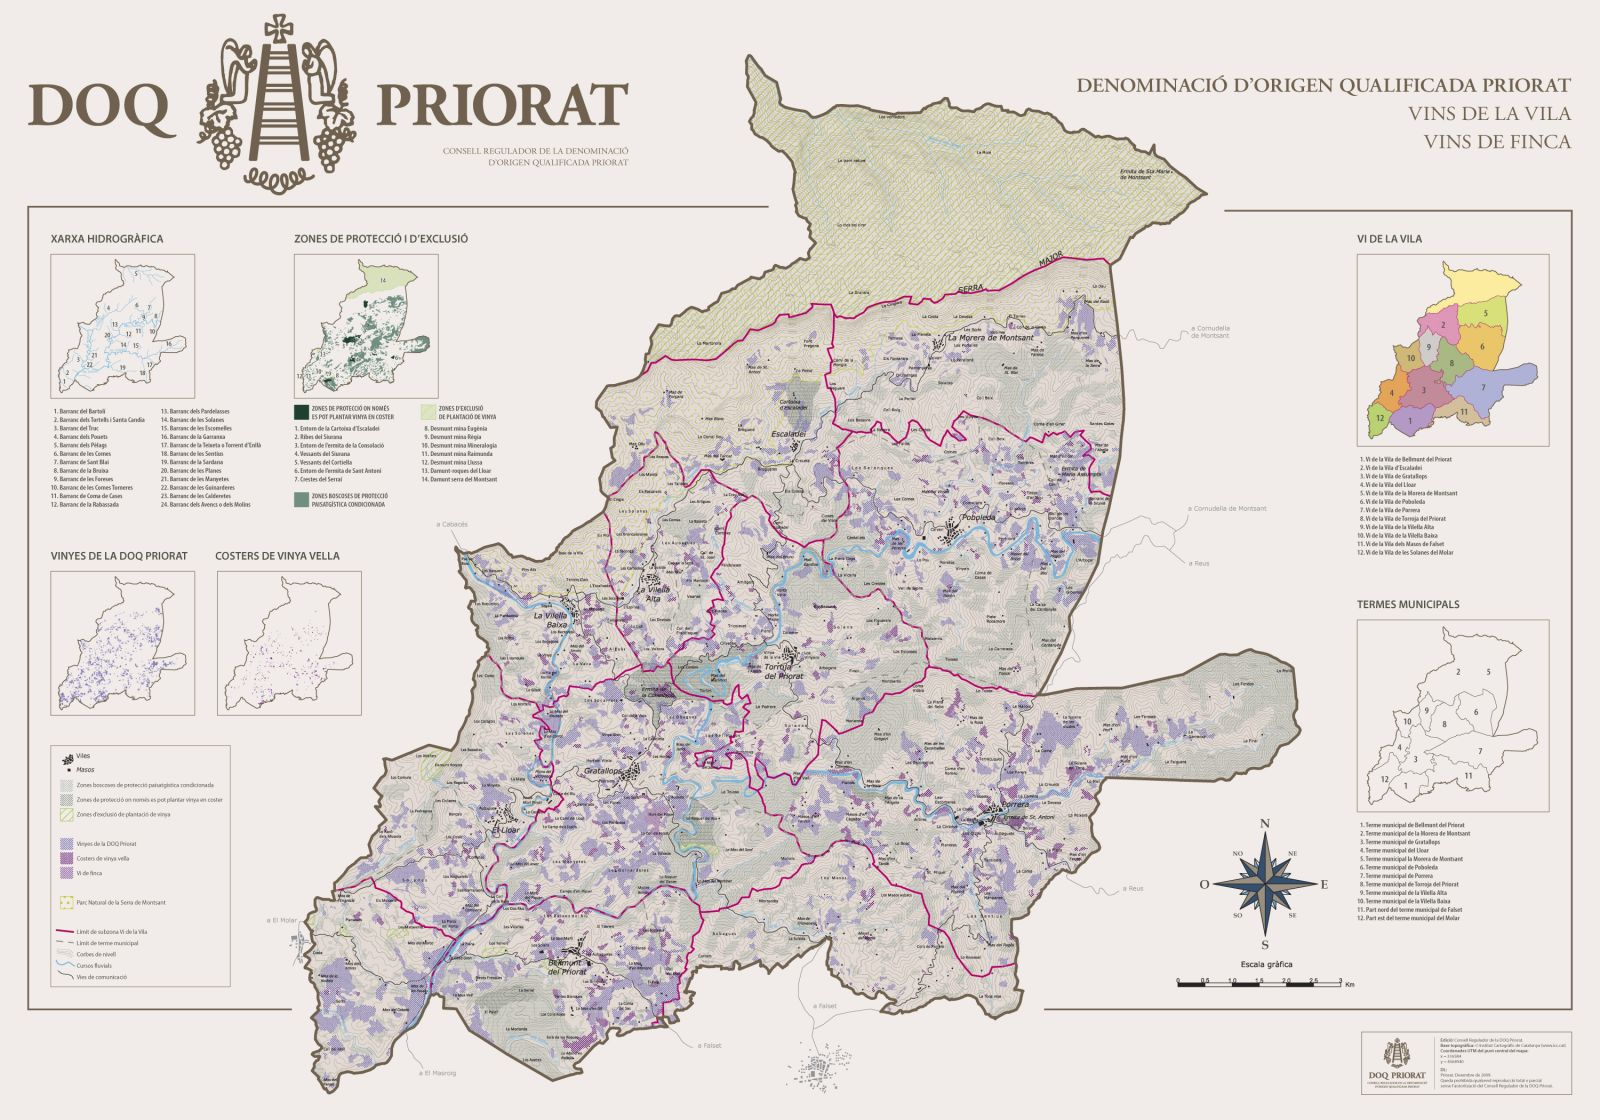 Priorat DOP wine region Map courtesy of DOQPriorat.org